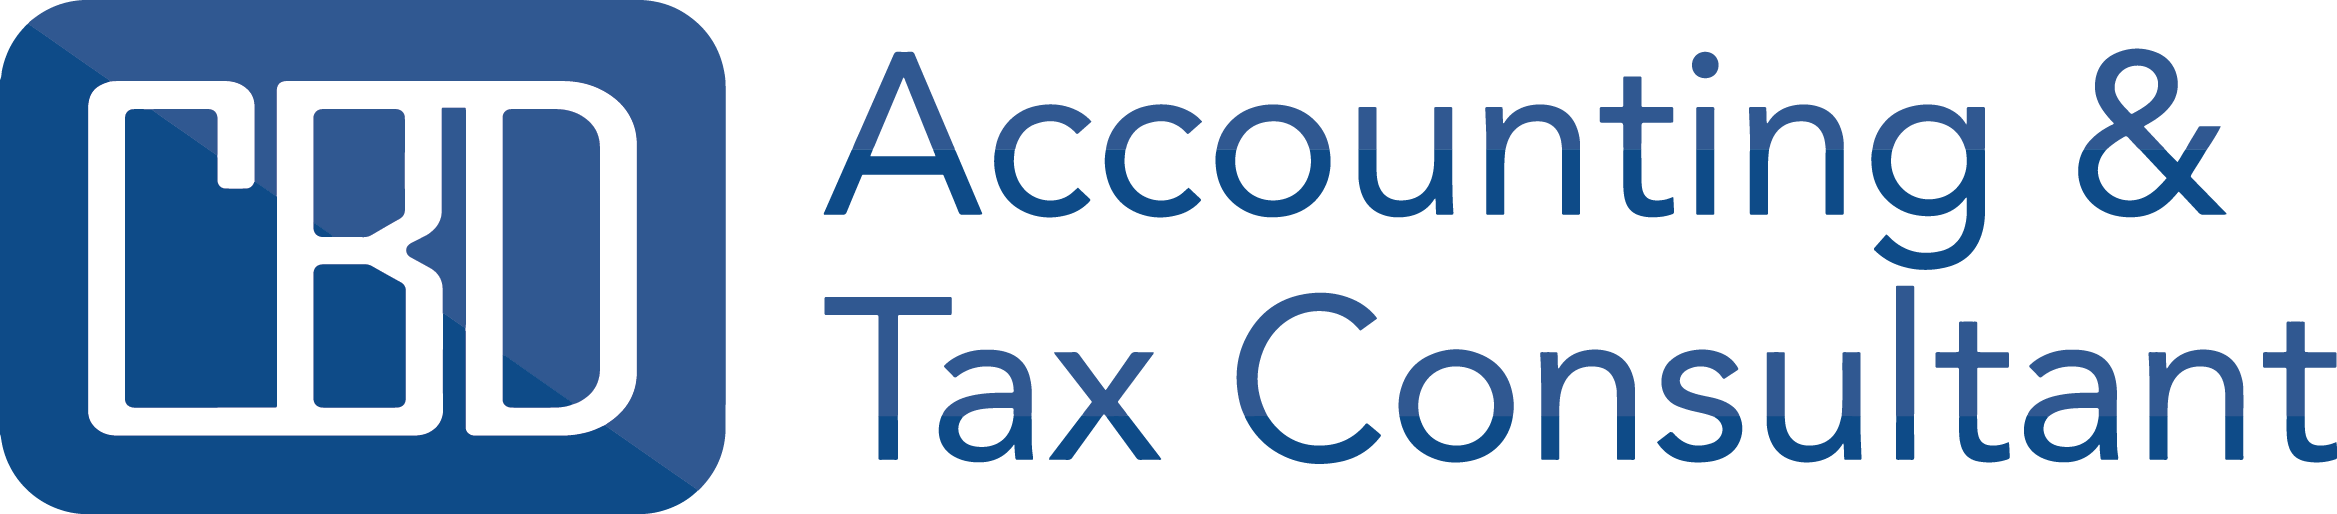 CBD Accounting and TAX Consultant Logo